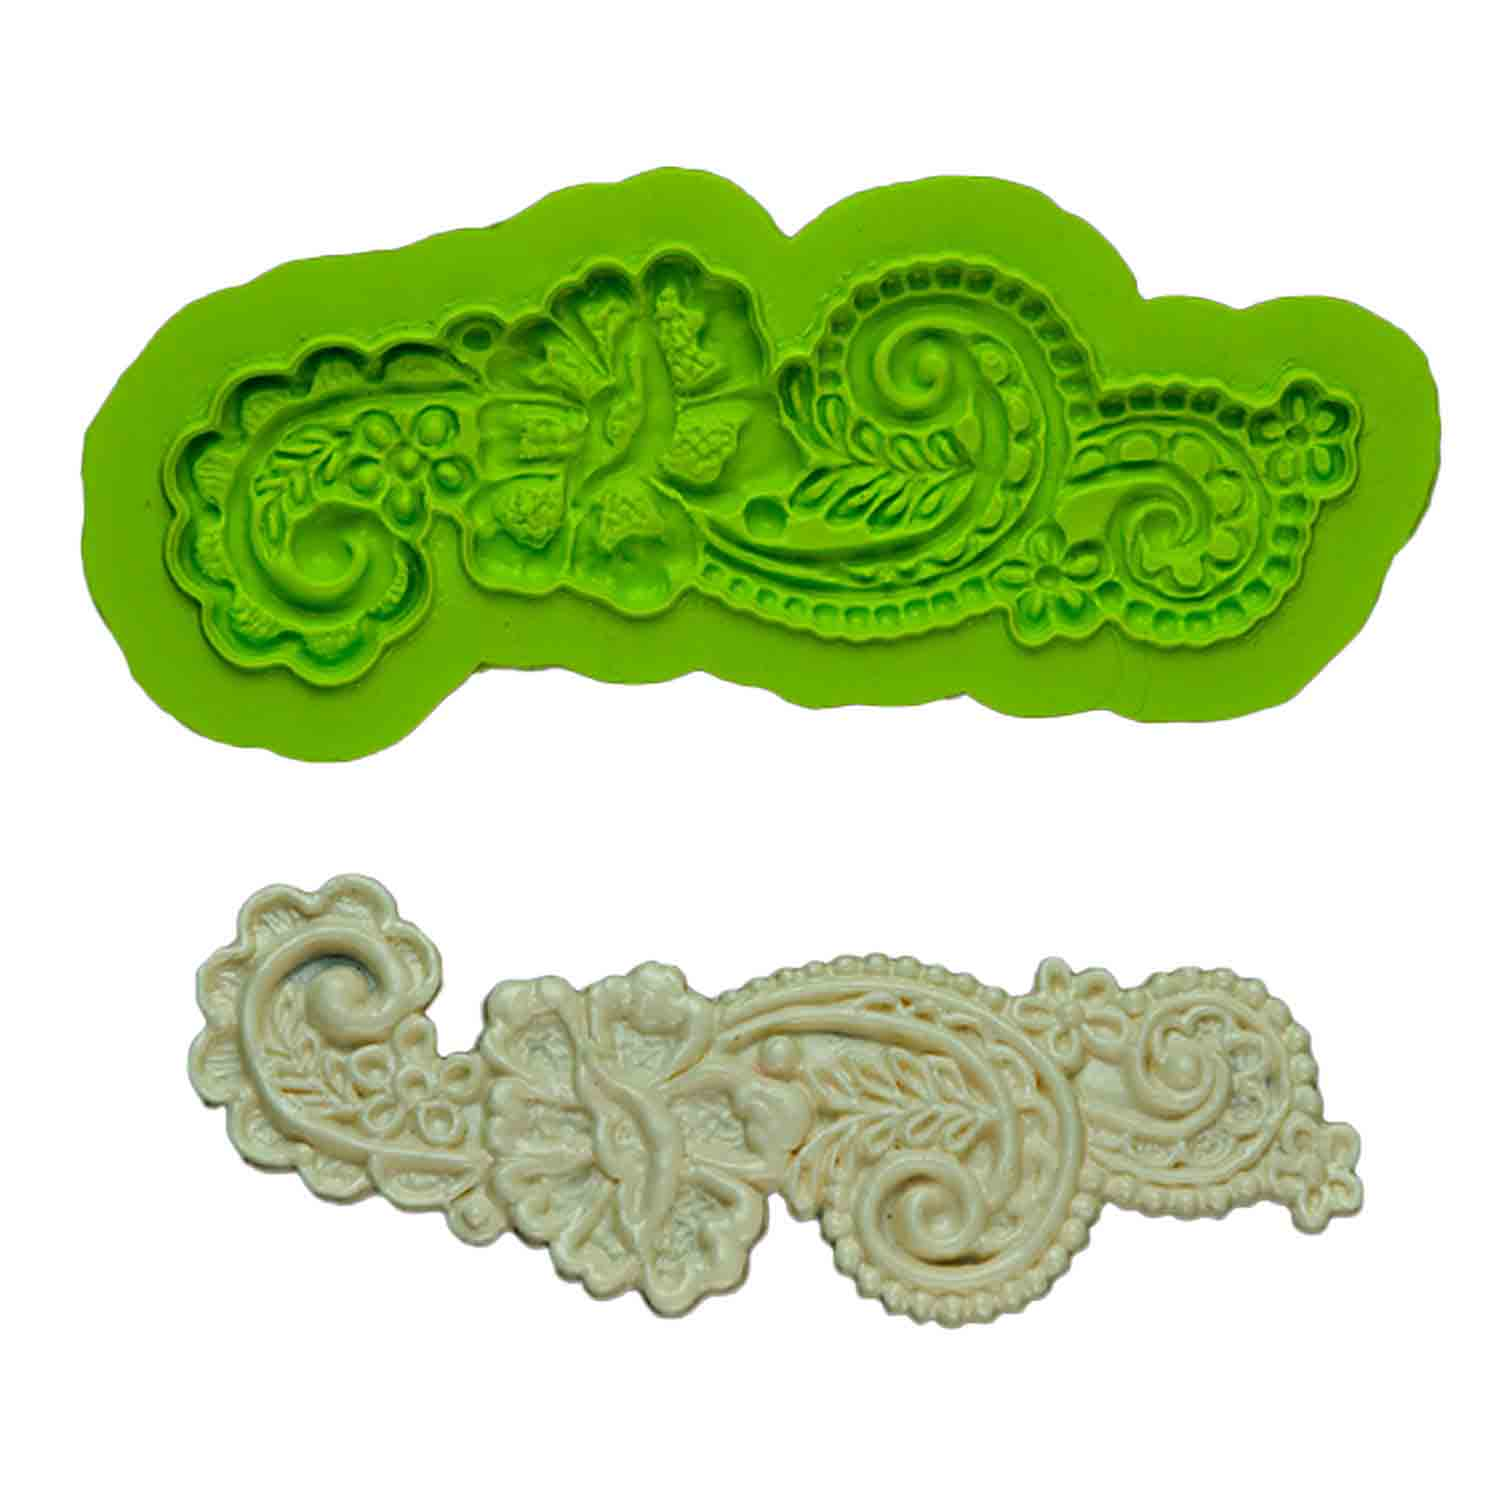 Rose Mary Lace Silicone Mold